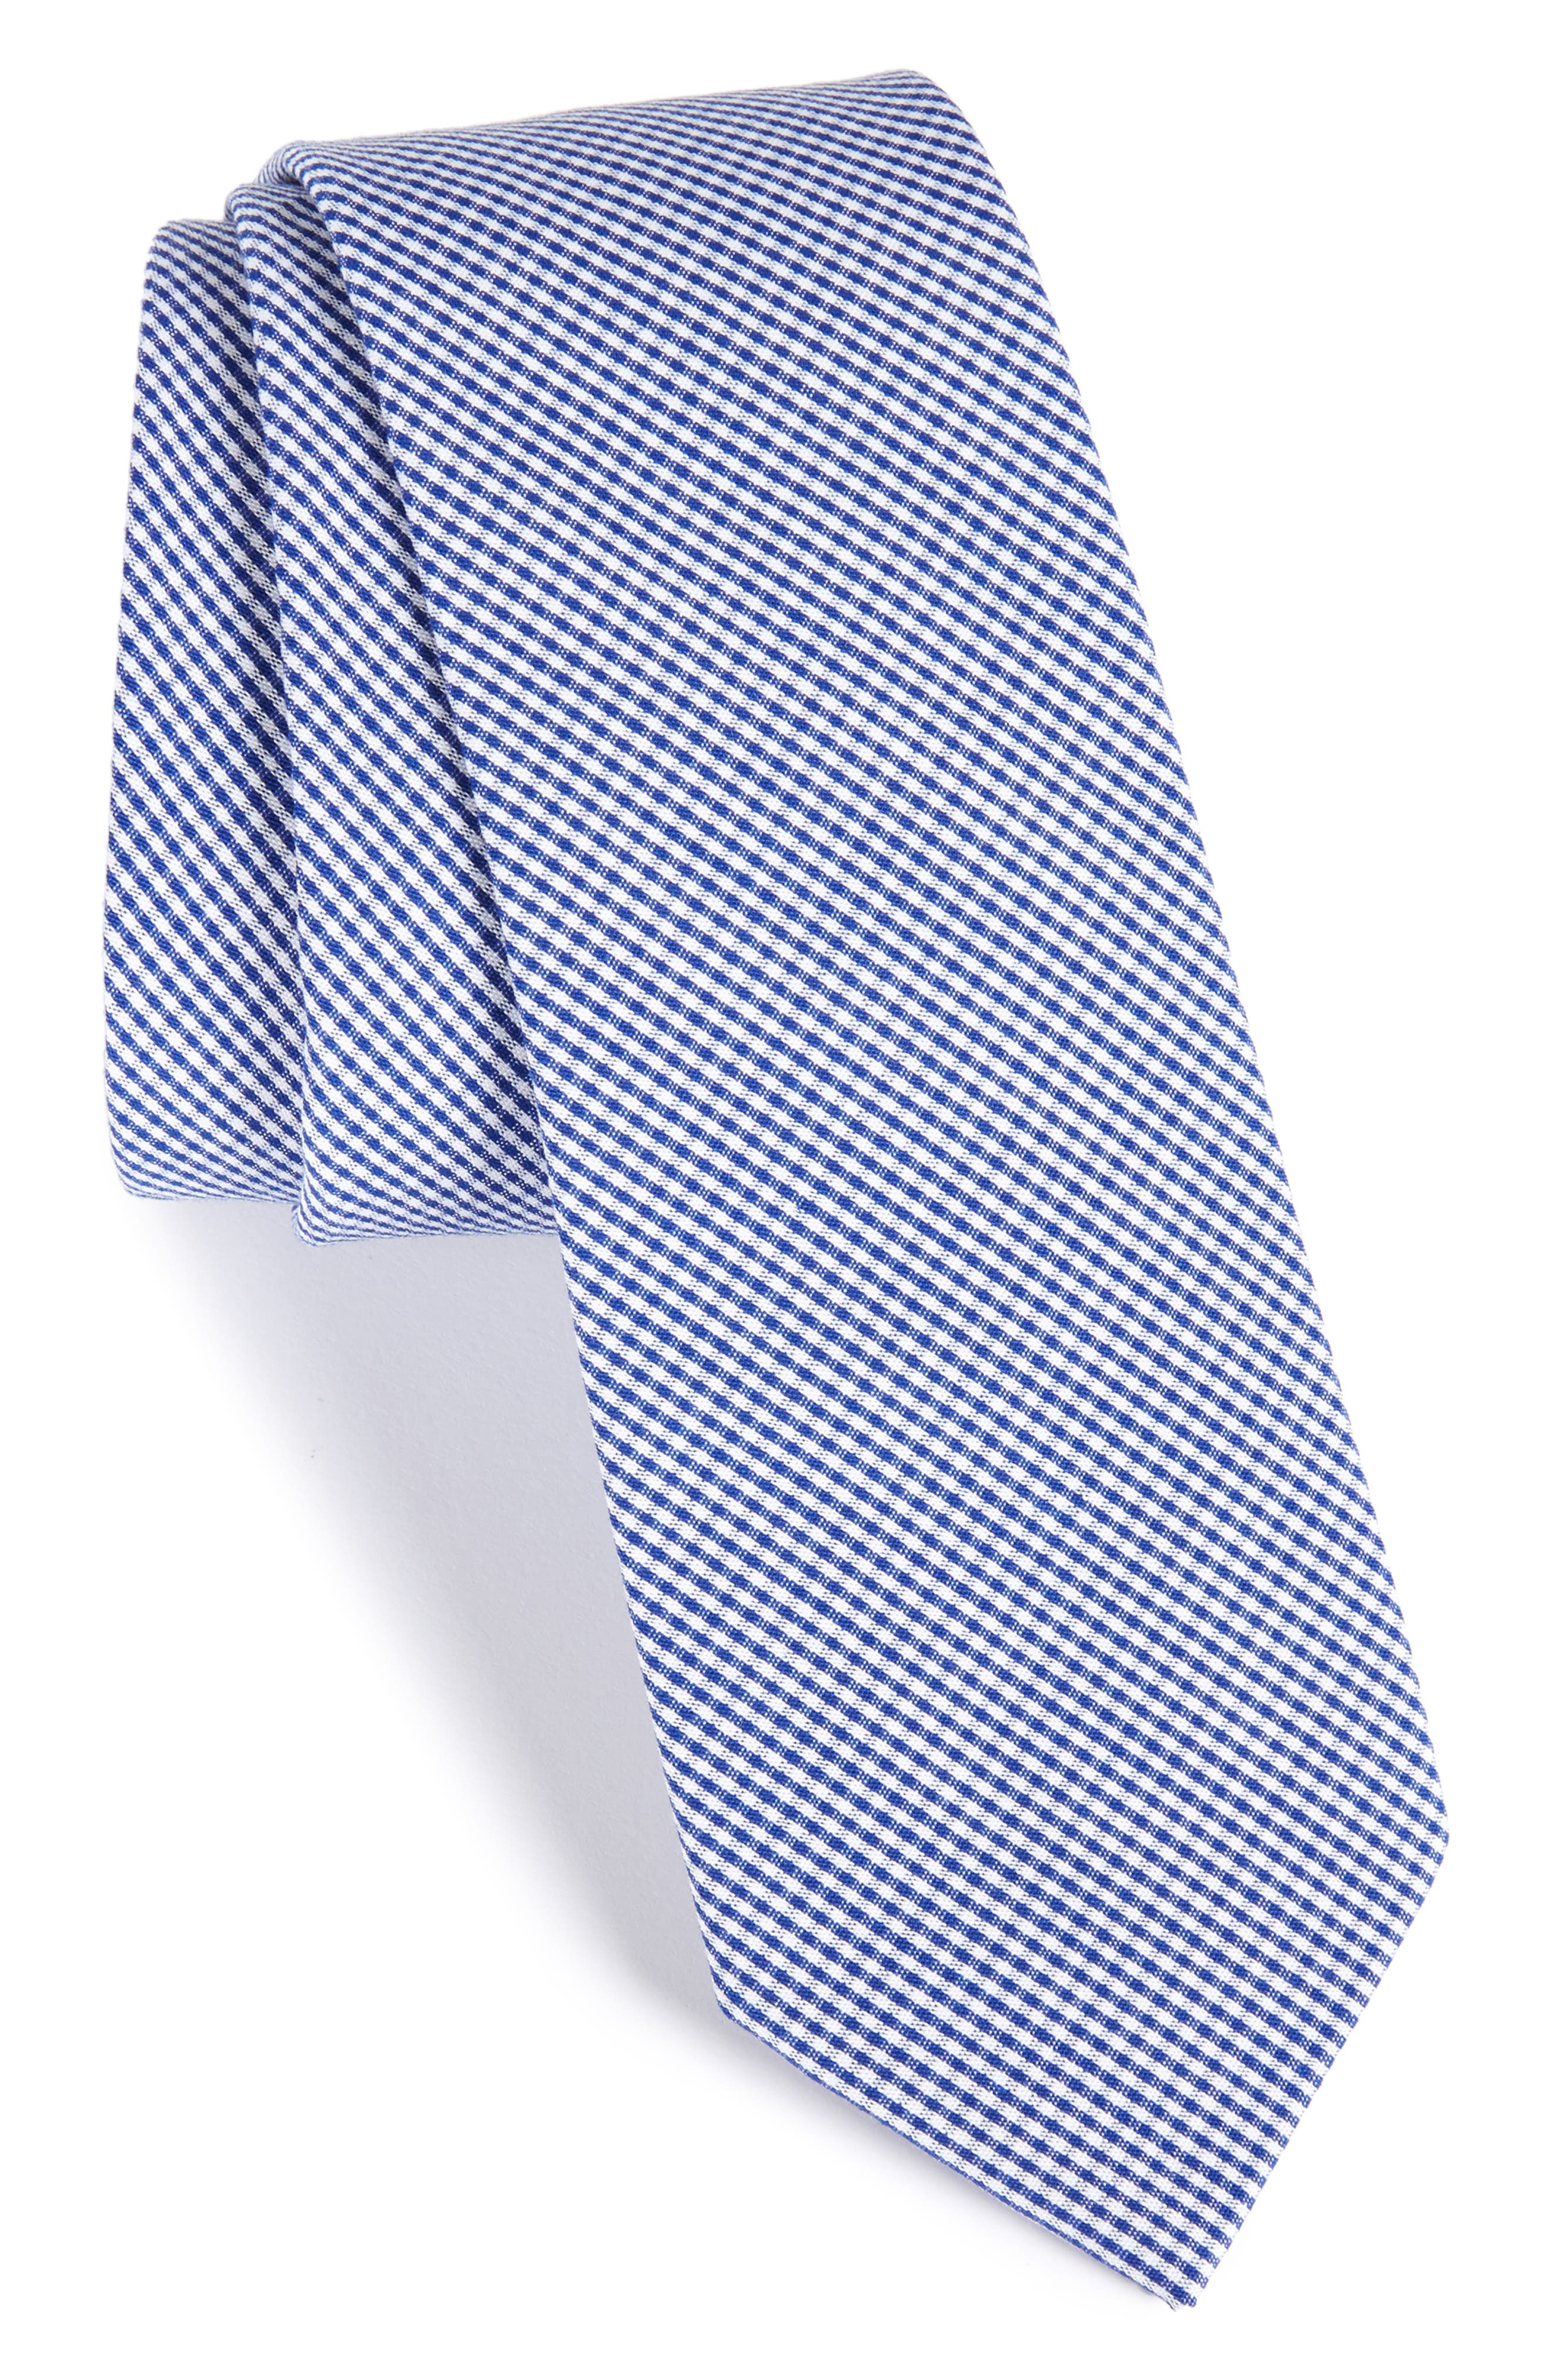 Alternate Image 1 Selected - 1901 Check Cotton Tie